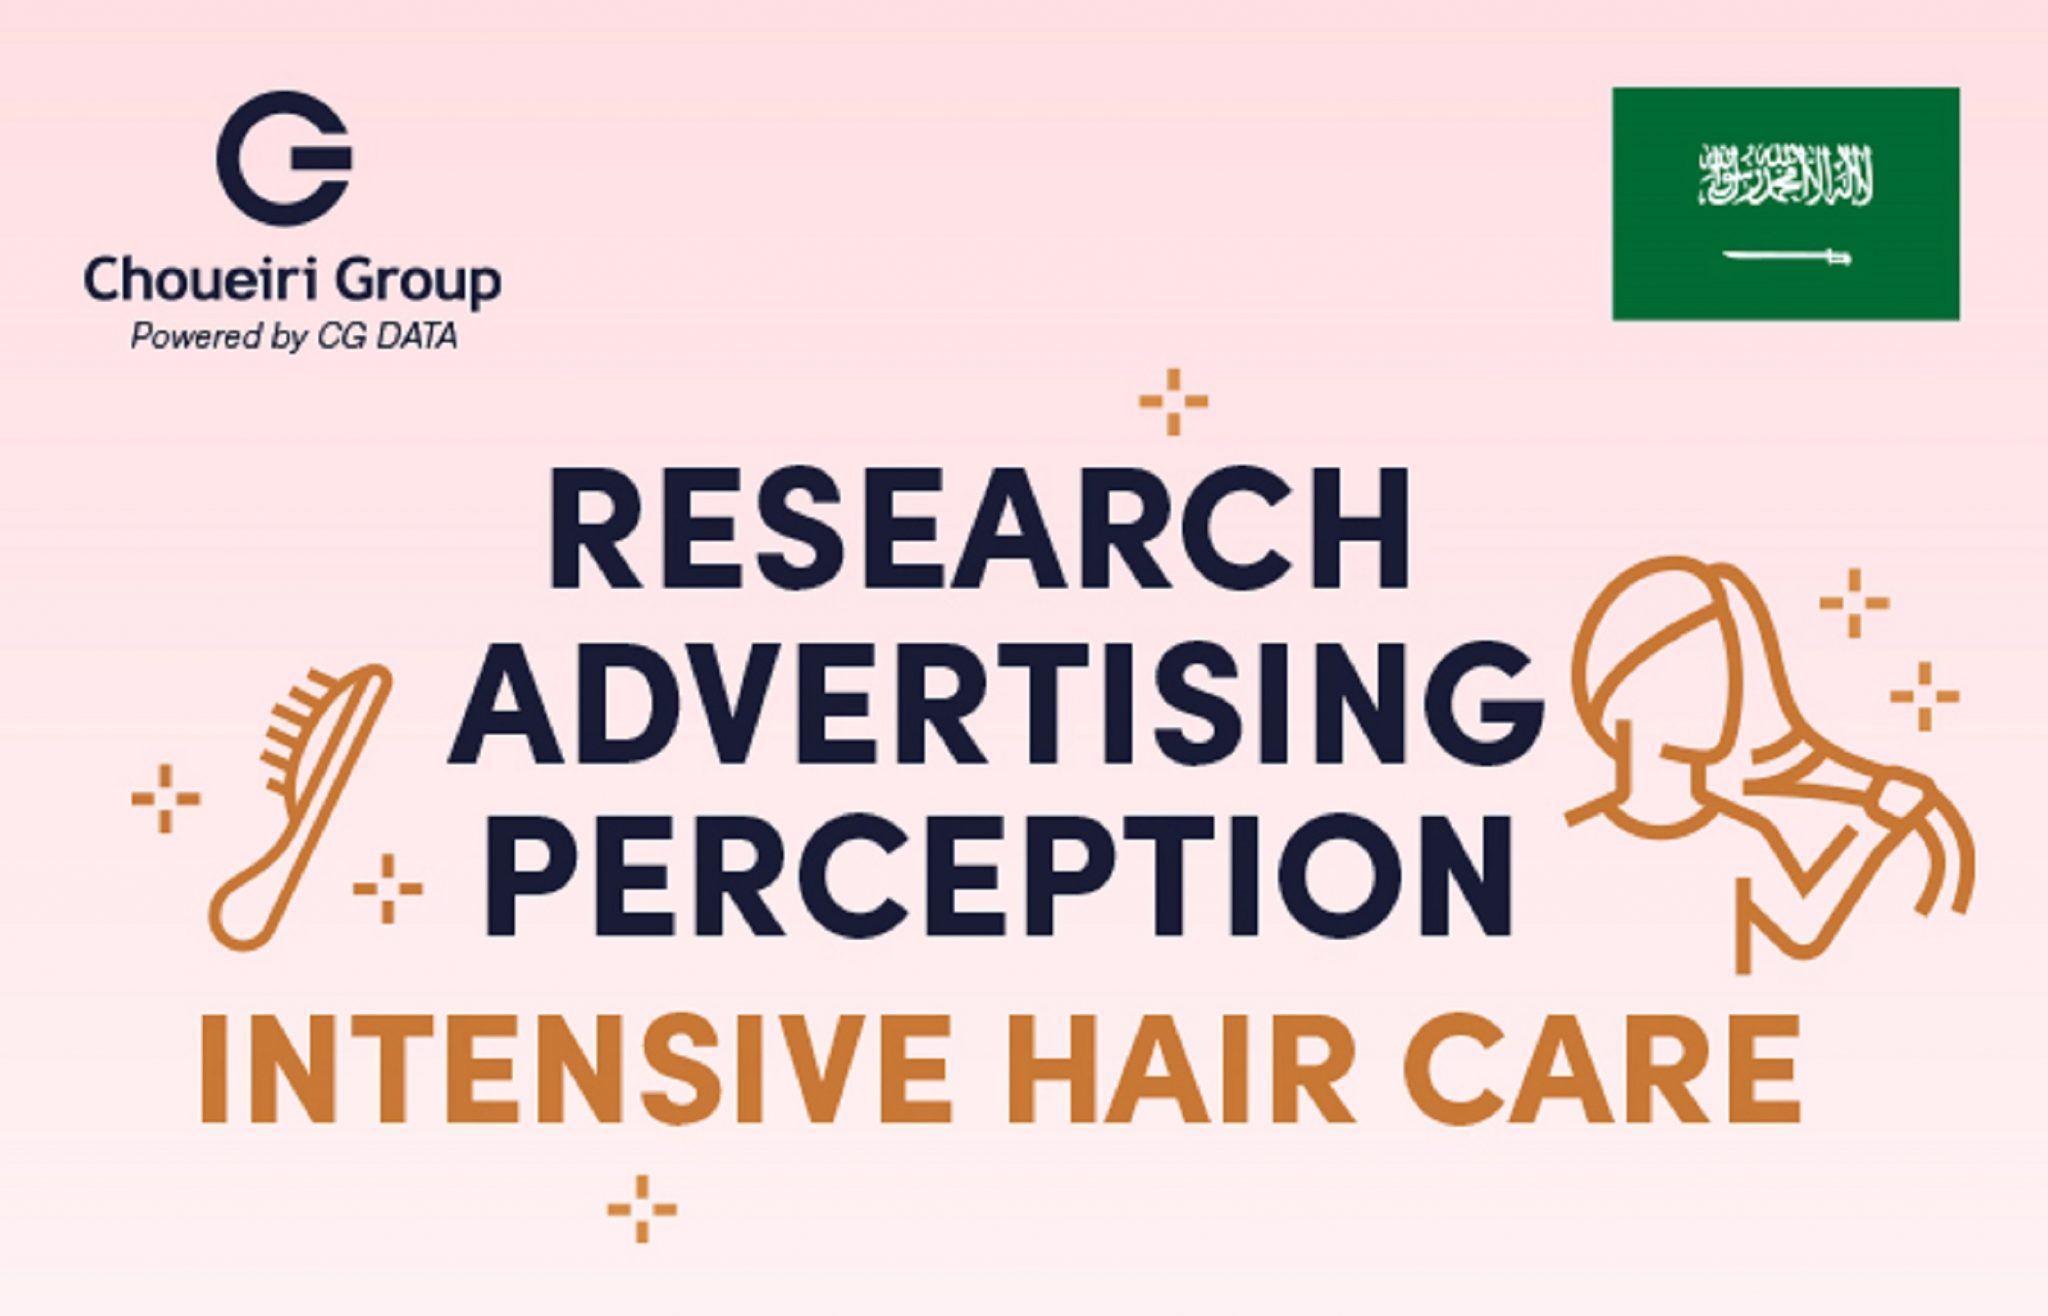 research-on-advertising-perception--intensive-hair-care-category